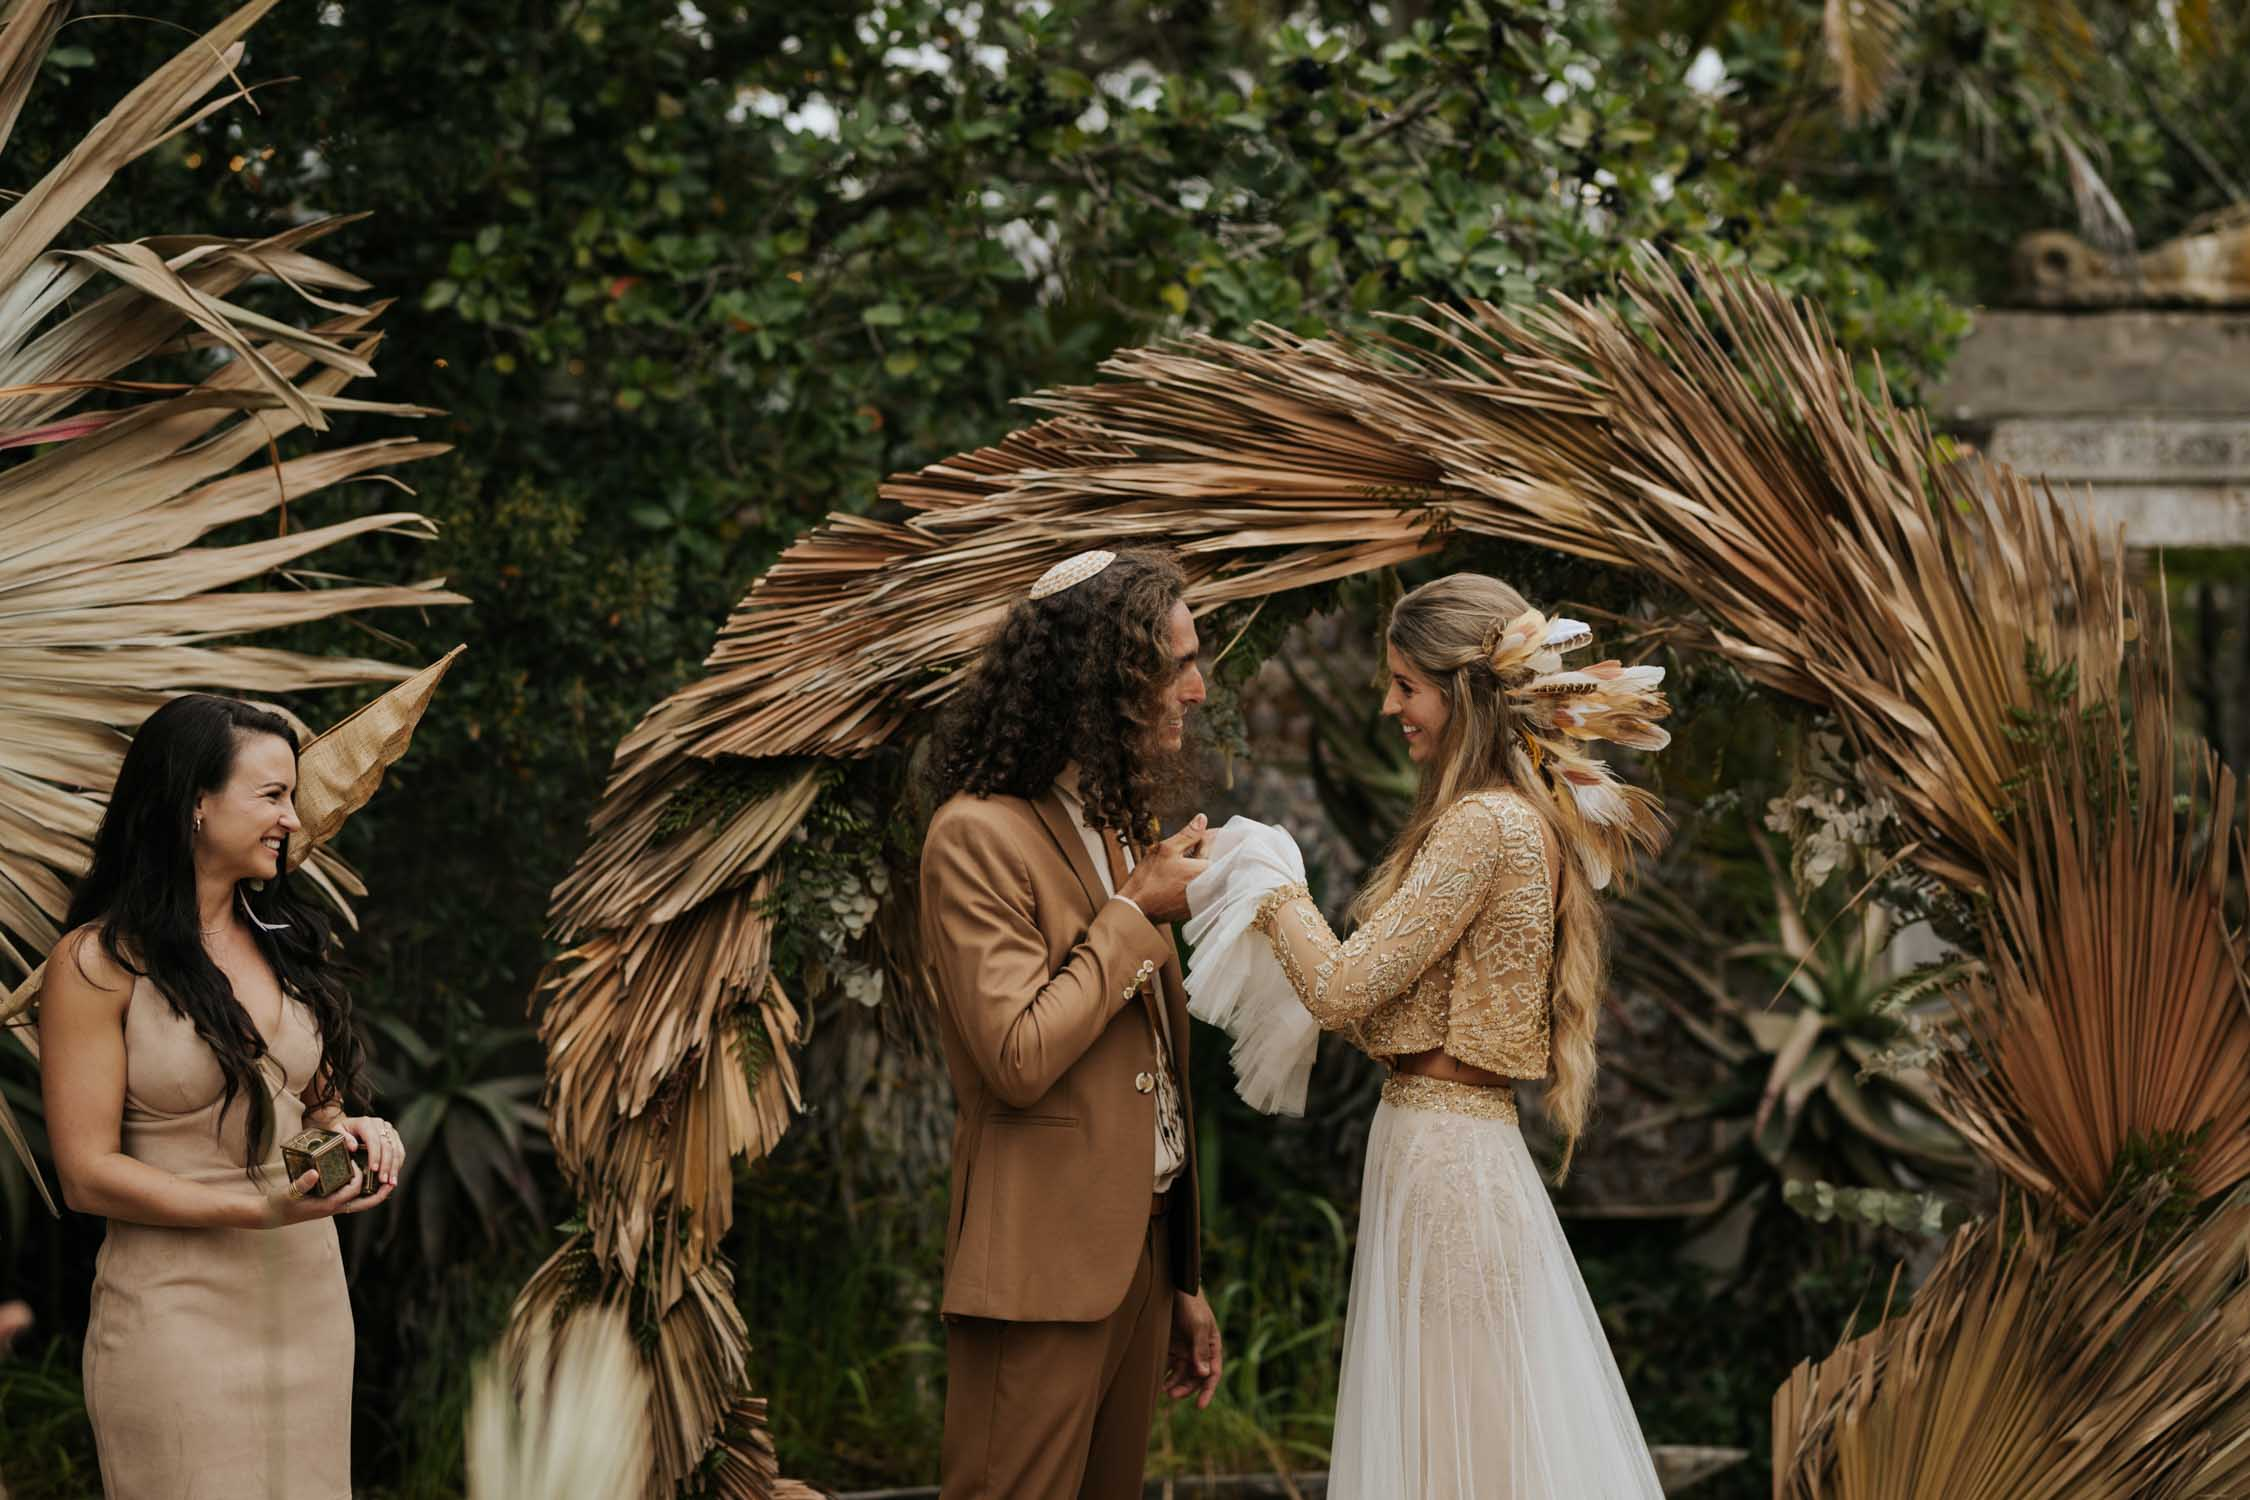 Incredible gorgeous long curly haired bohemian gypsy bride and groom exchange rings in front of dried grass circle wedding arch at Emily Moon, Plett Wedding Venue